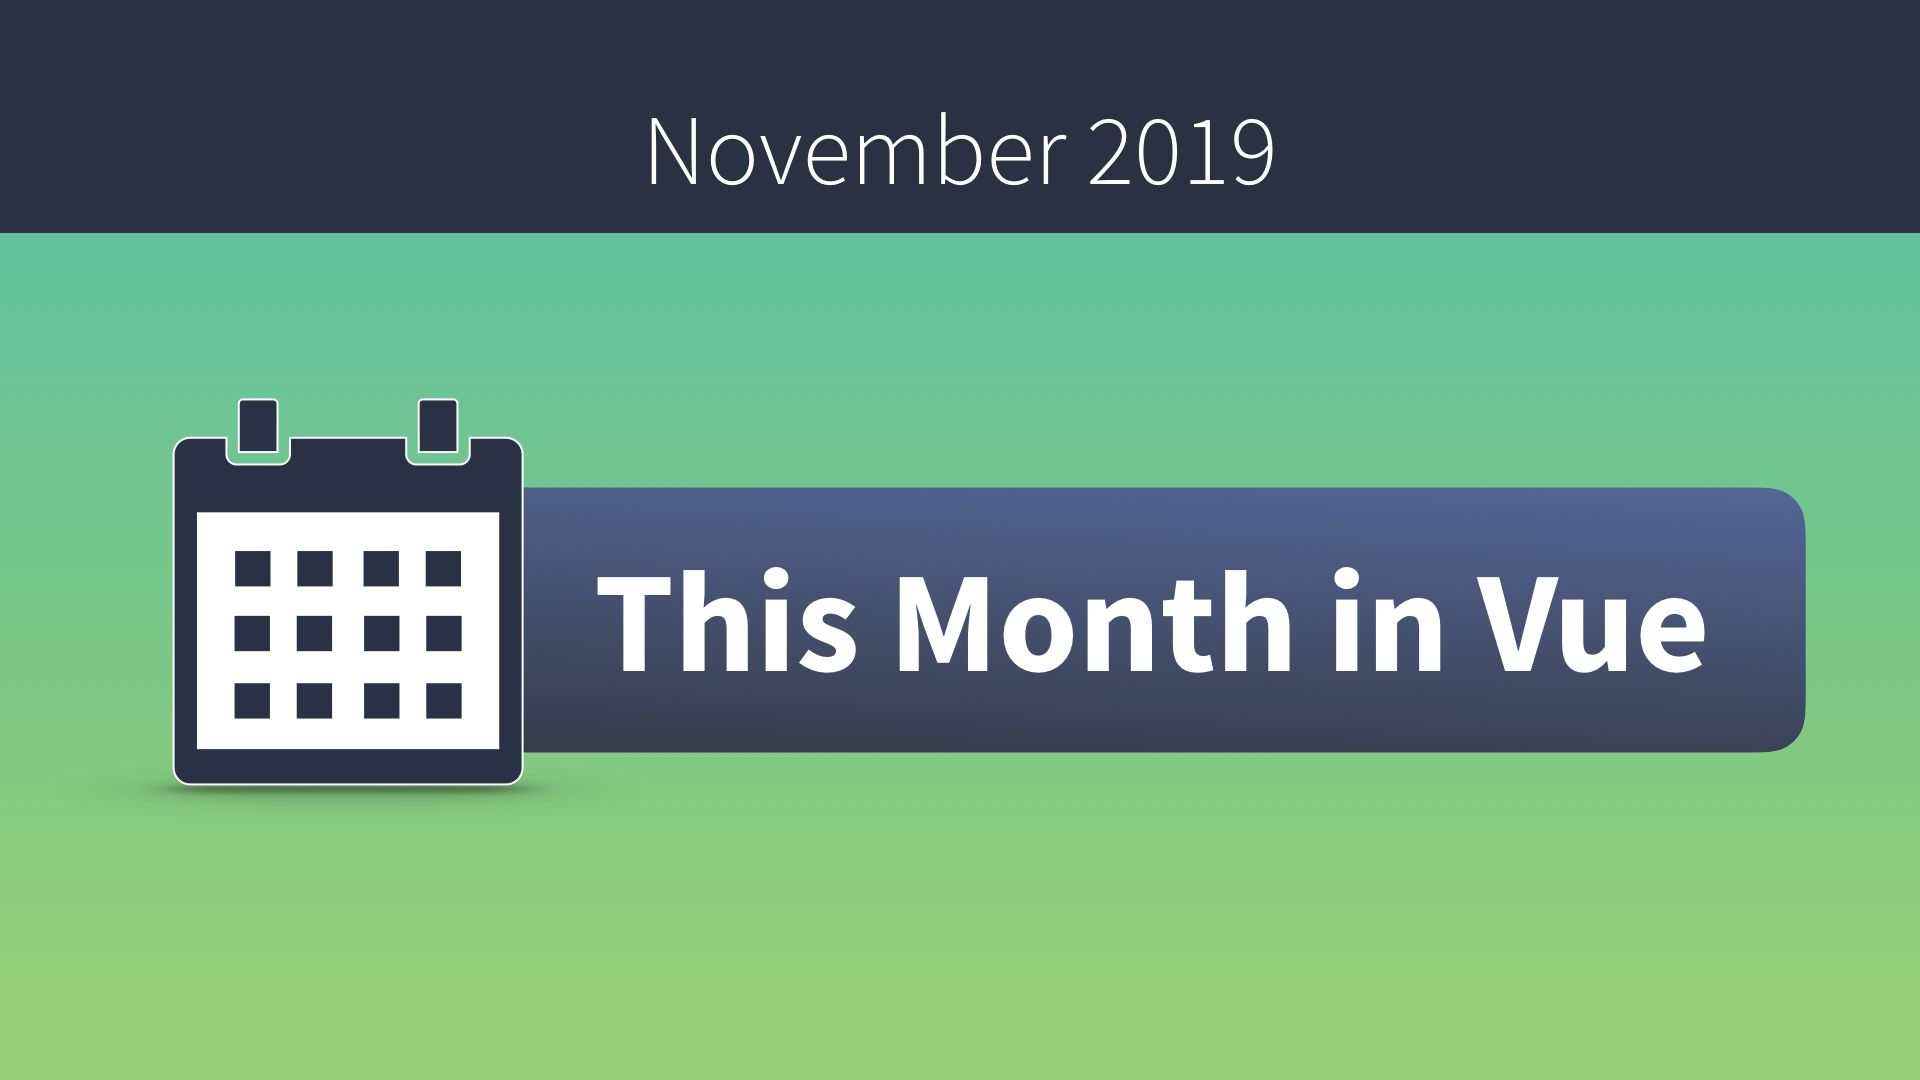 This Month in Vue - November 2019